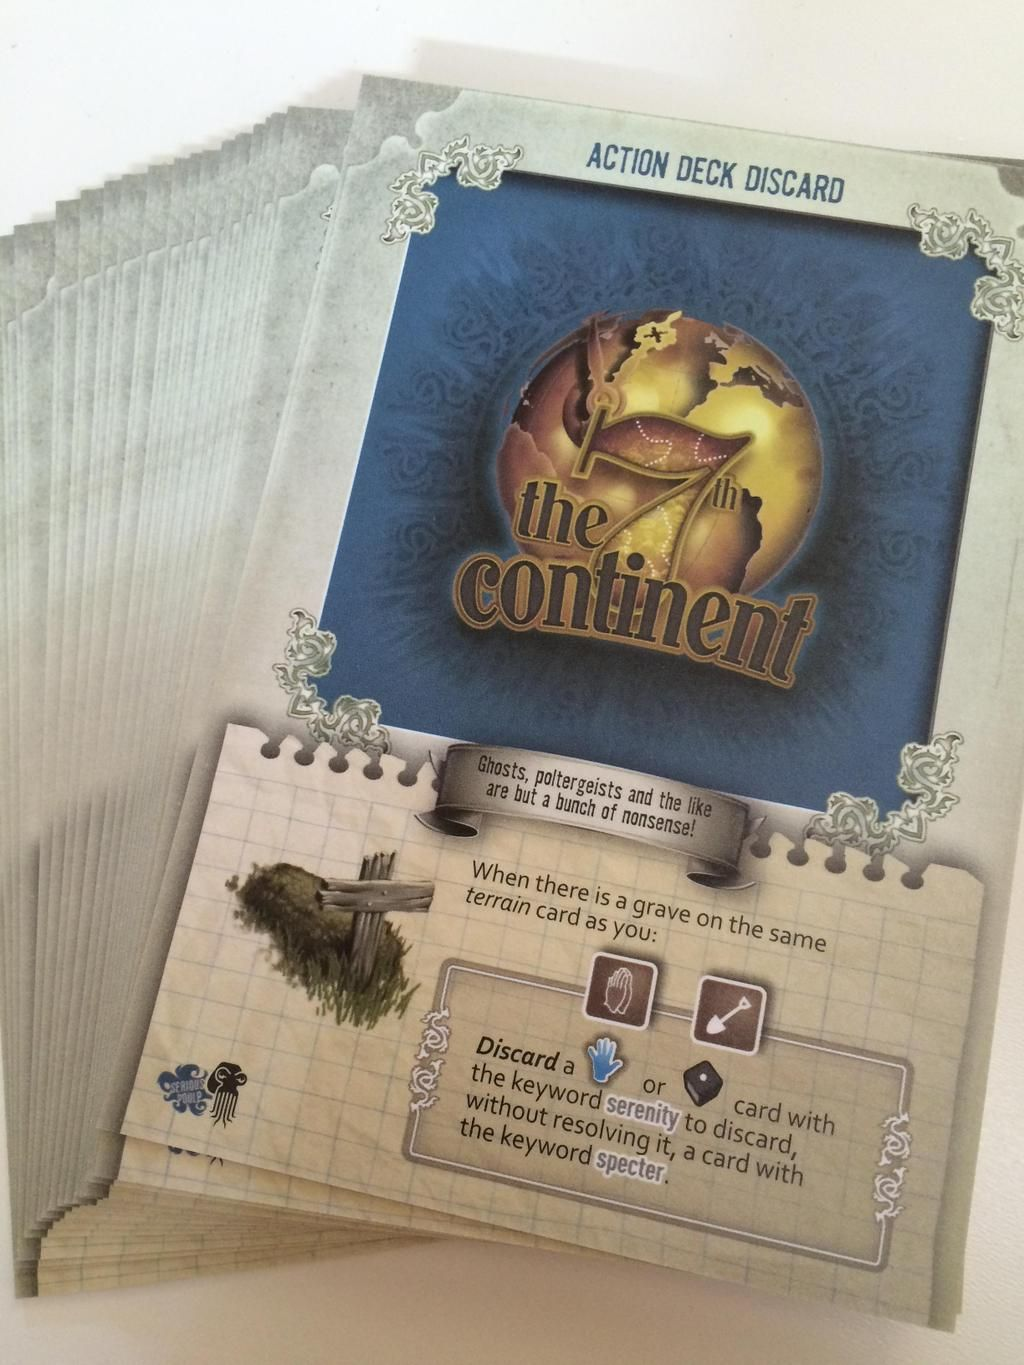 The 7th Continent: Action Deck Discard